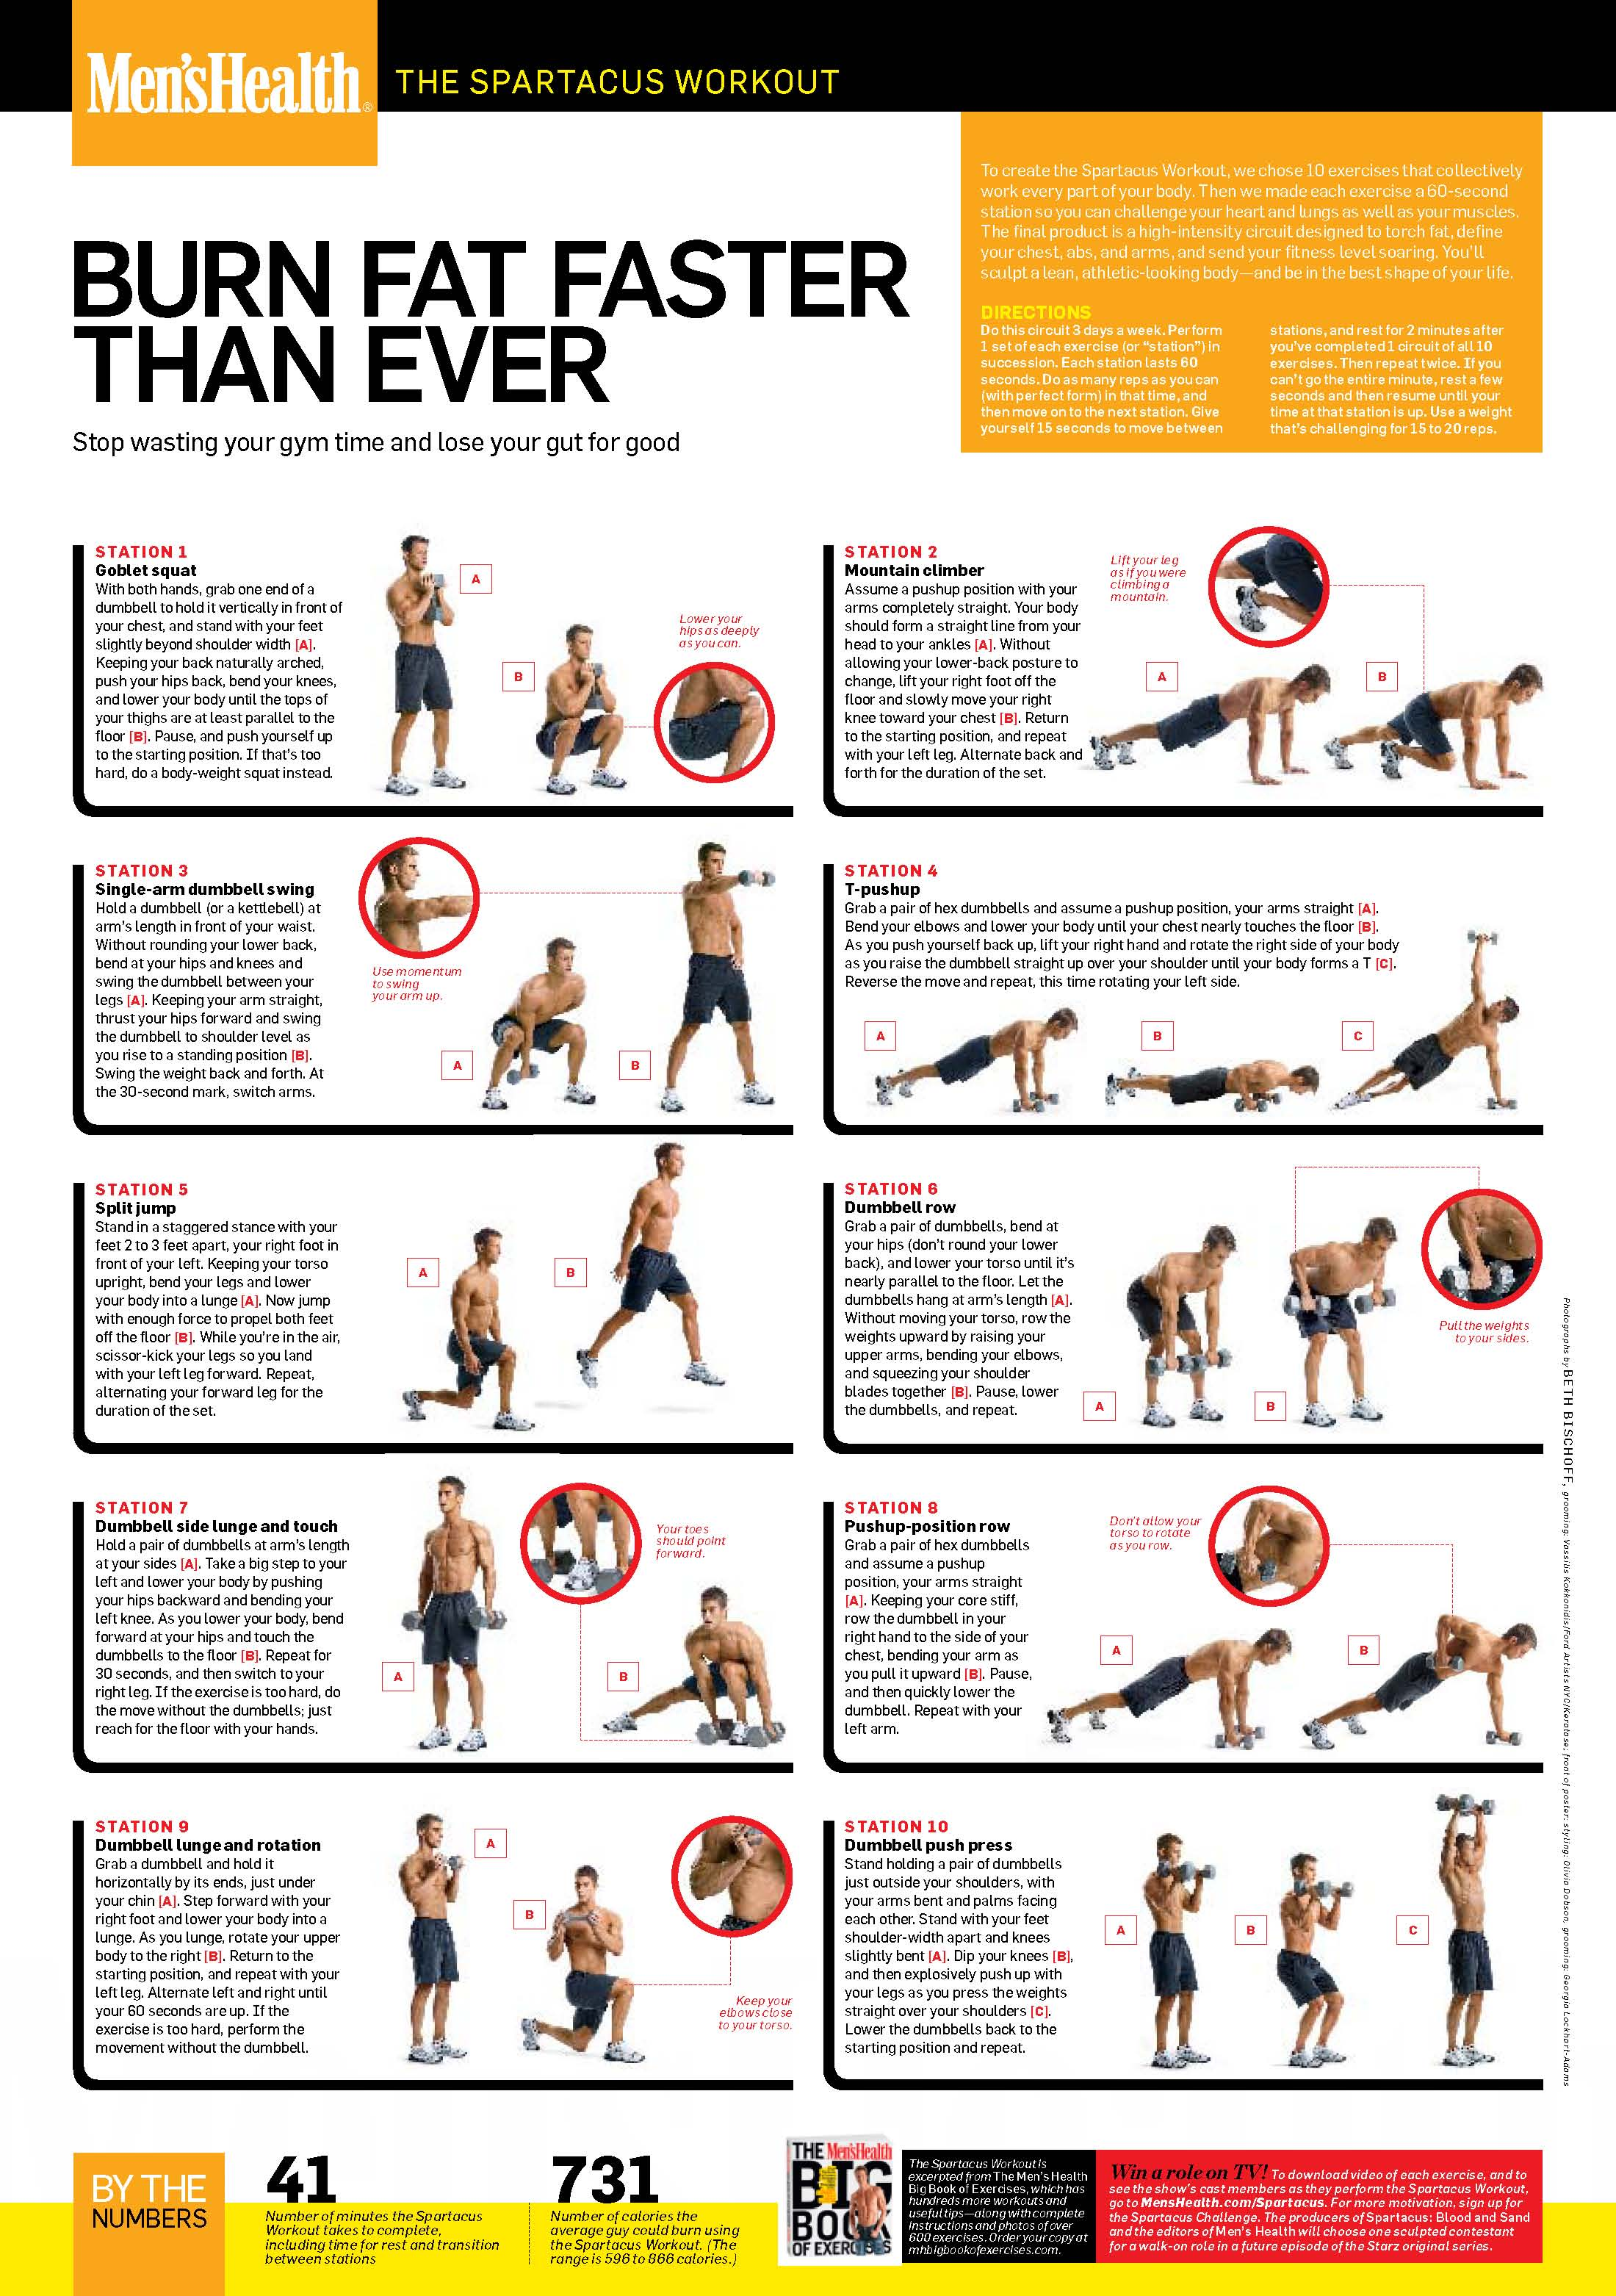 Sirromfitnessfileswordpress 2011 10 Mh Spartacus Workout1 Page 2